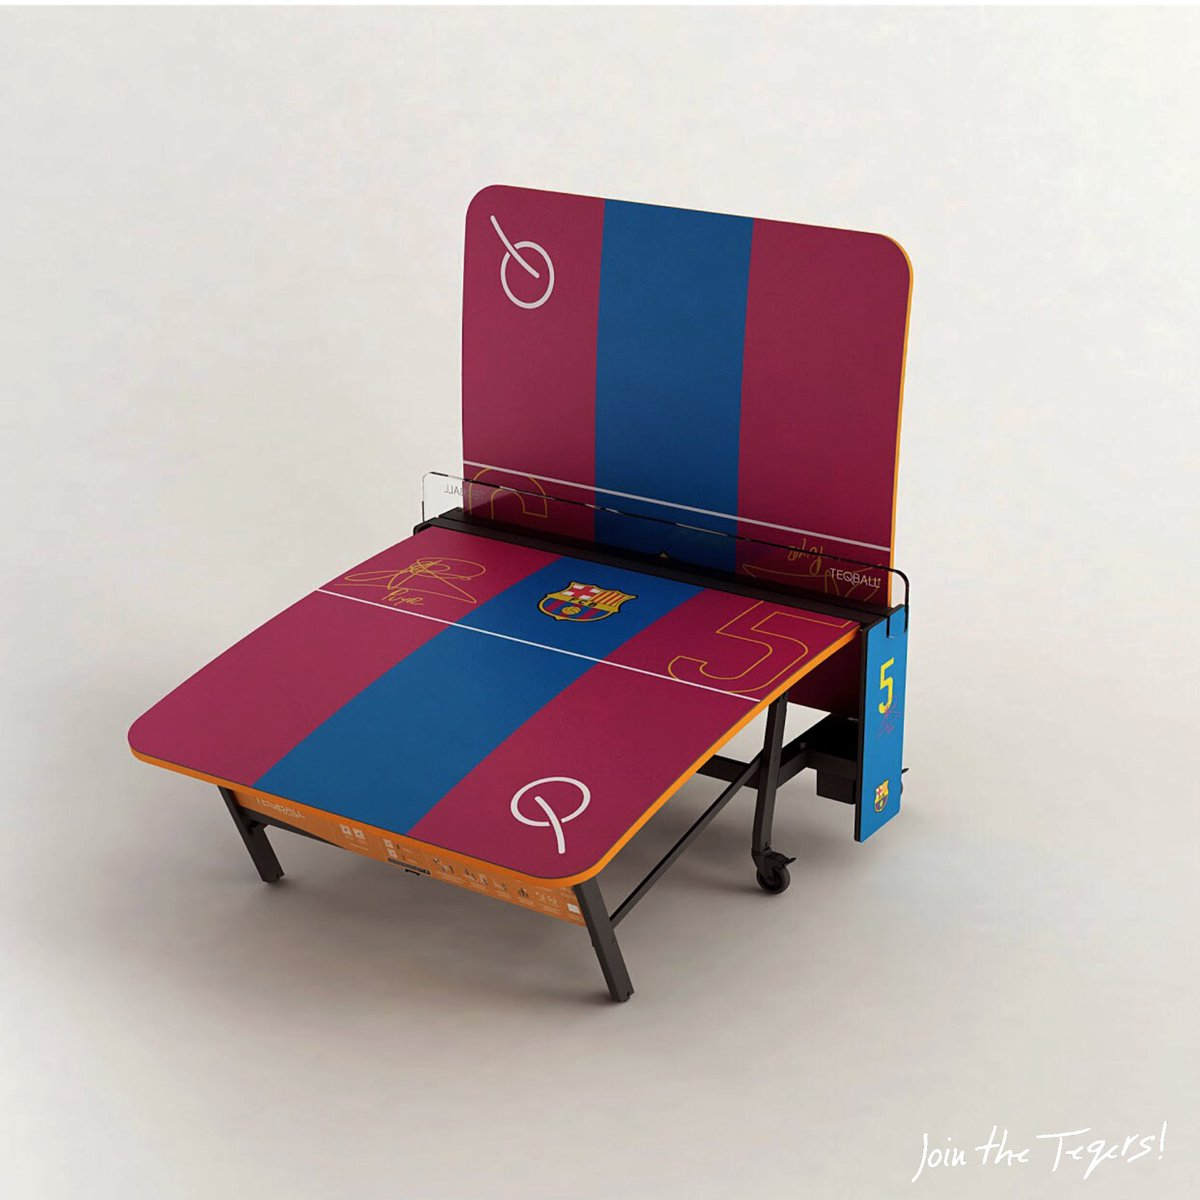 Teqball On Twitter Puyol S Table Is Already In Barcelona